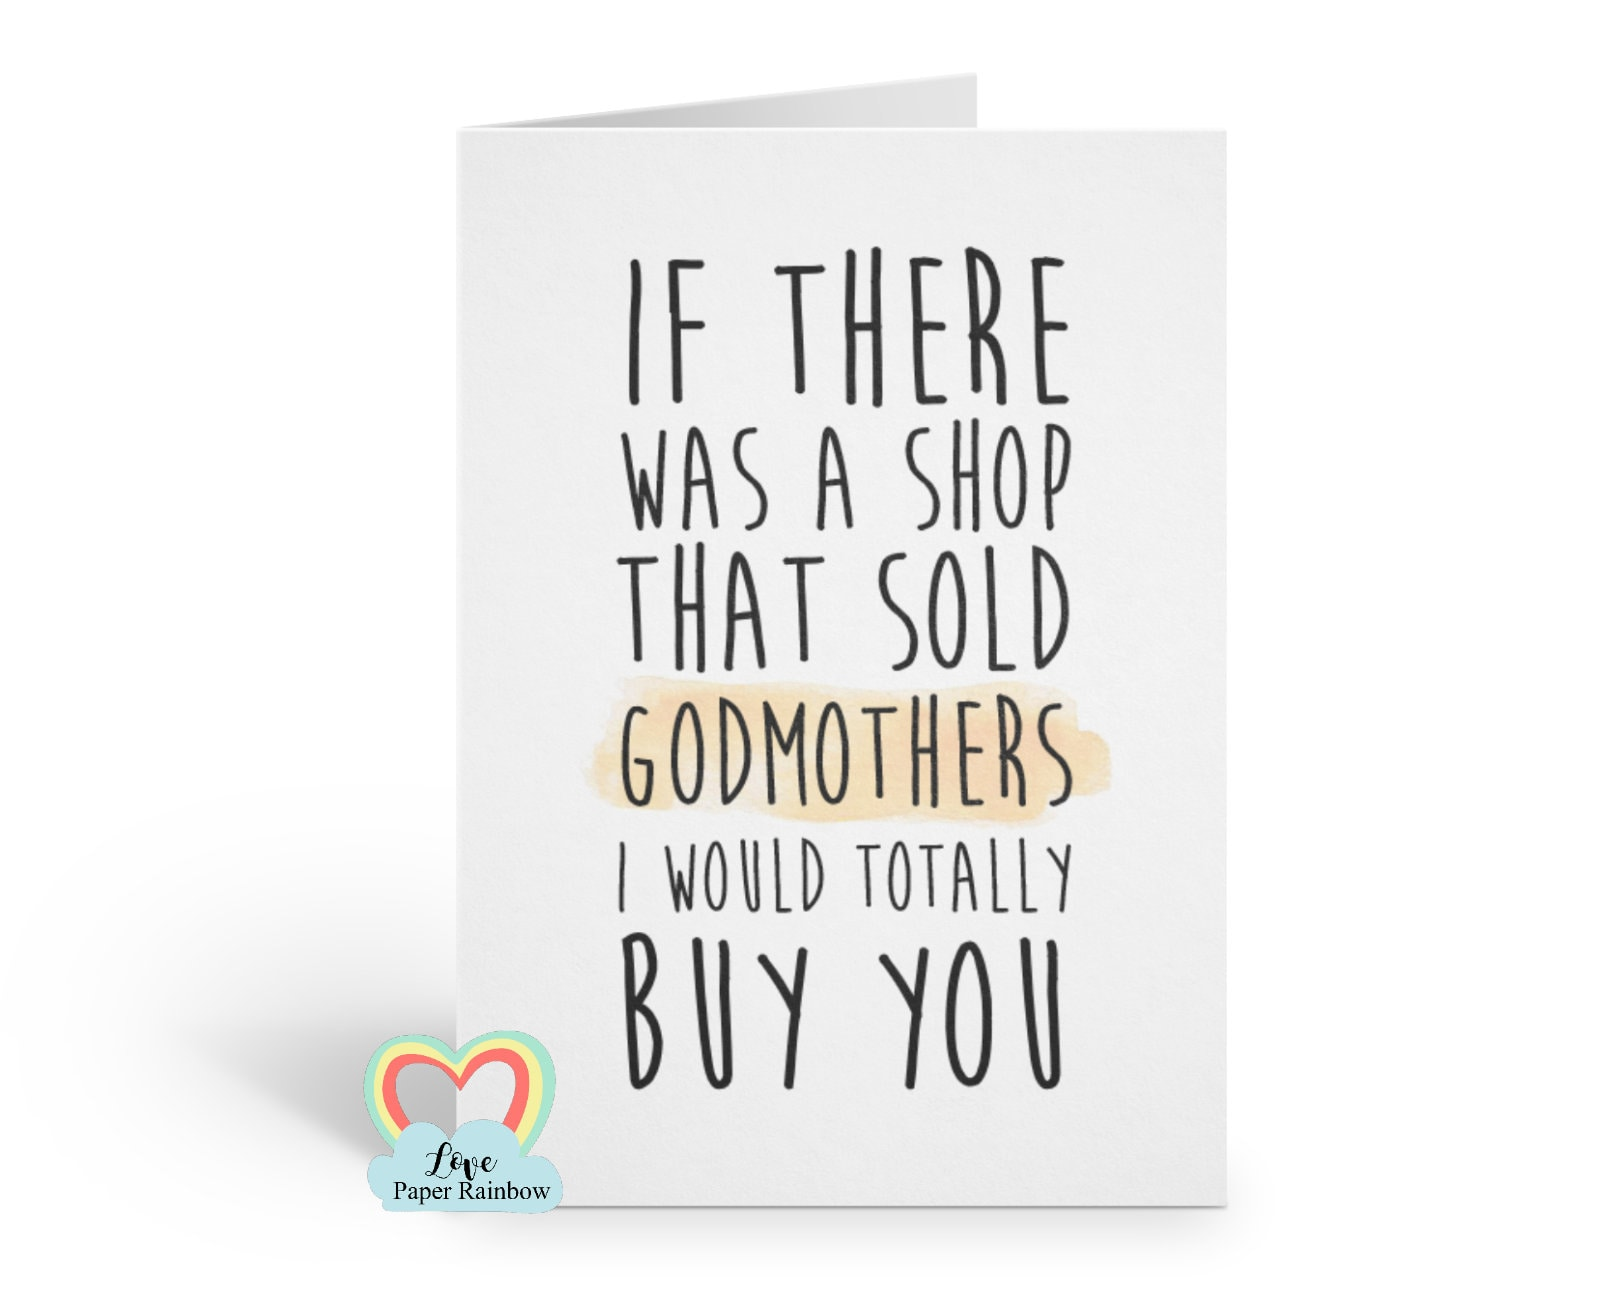 Godmother Card Funny Godmother Card Godmother Quote Godmother